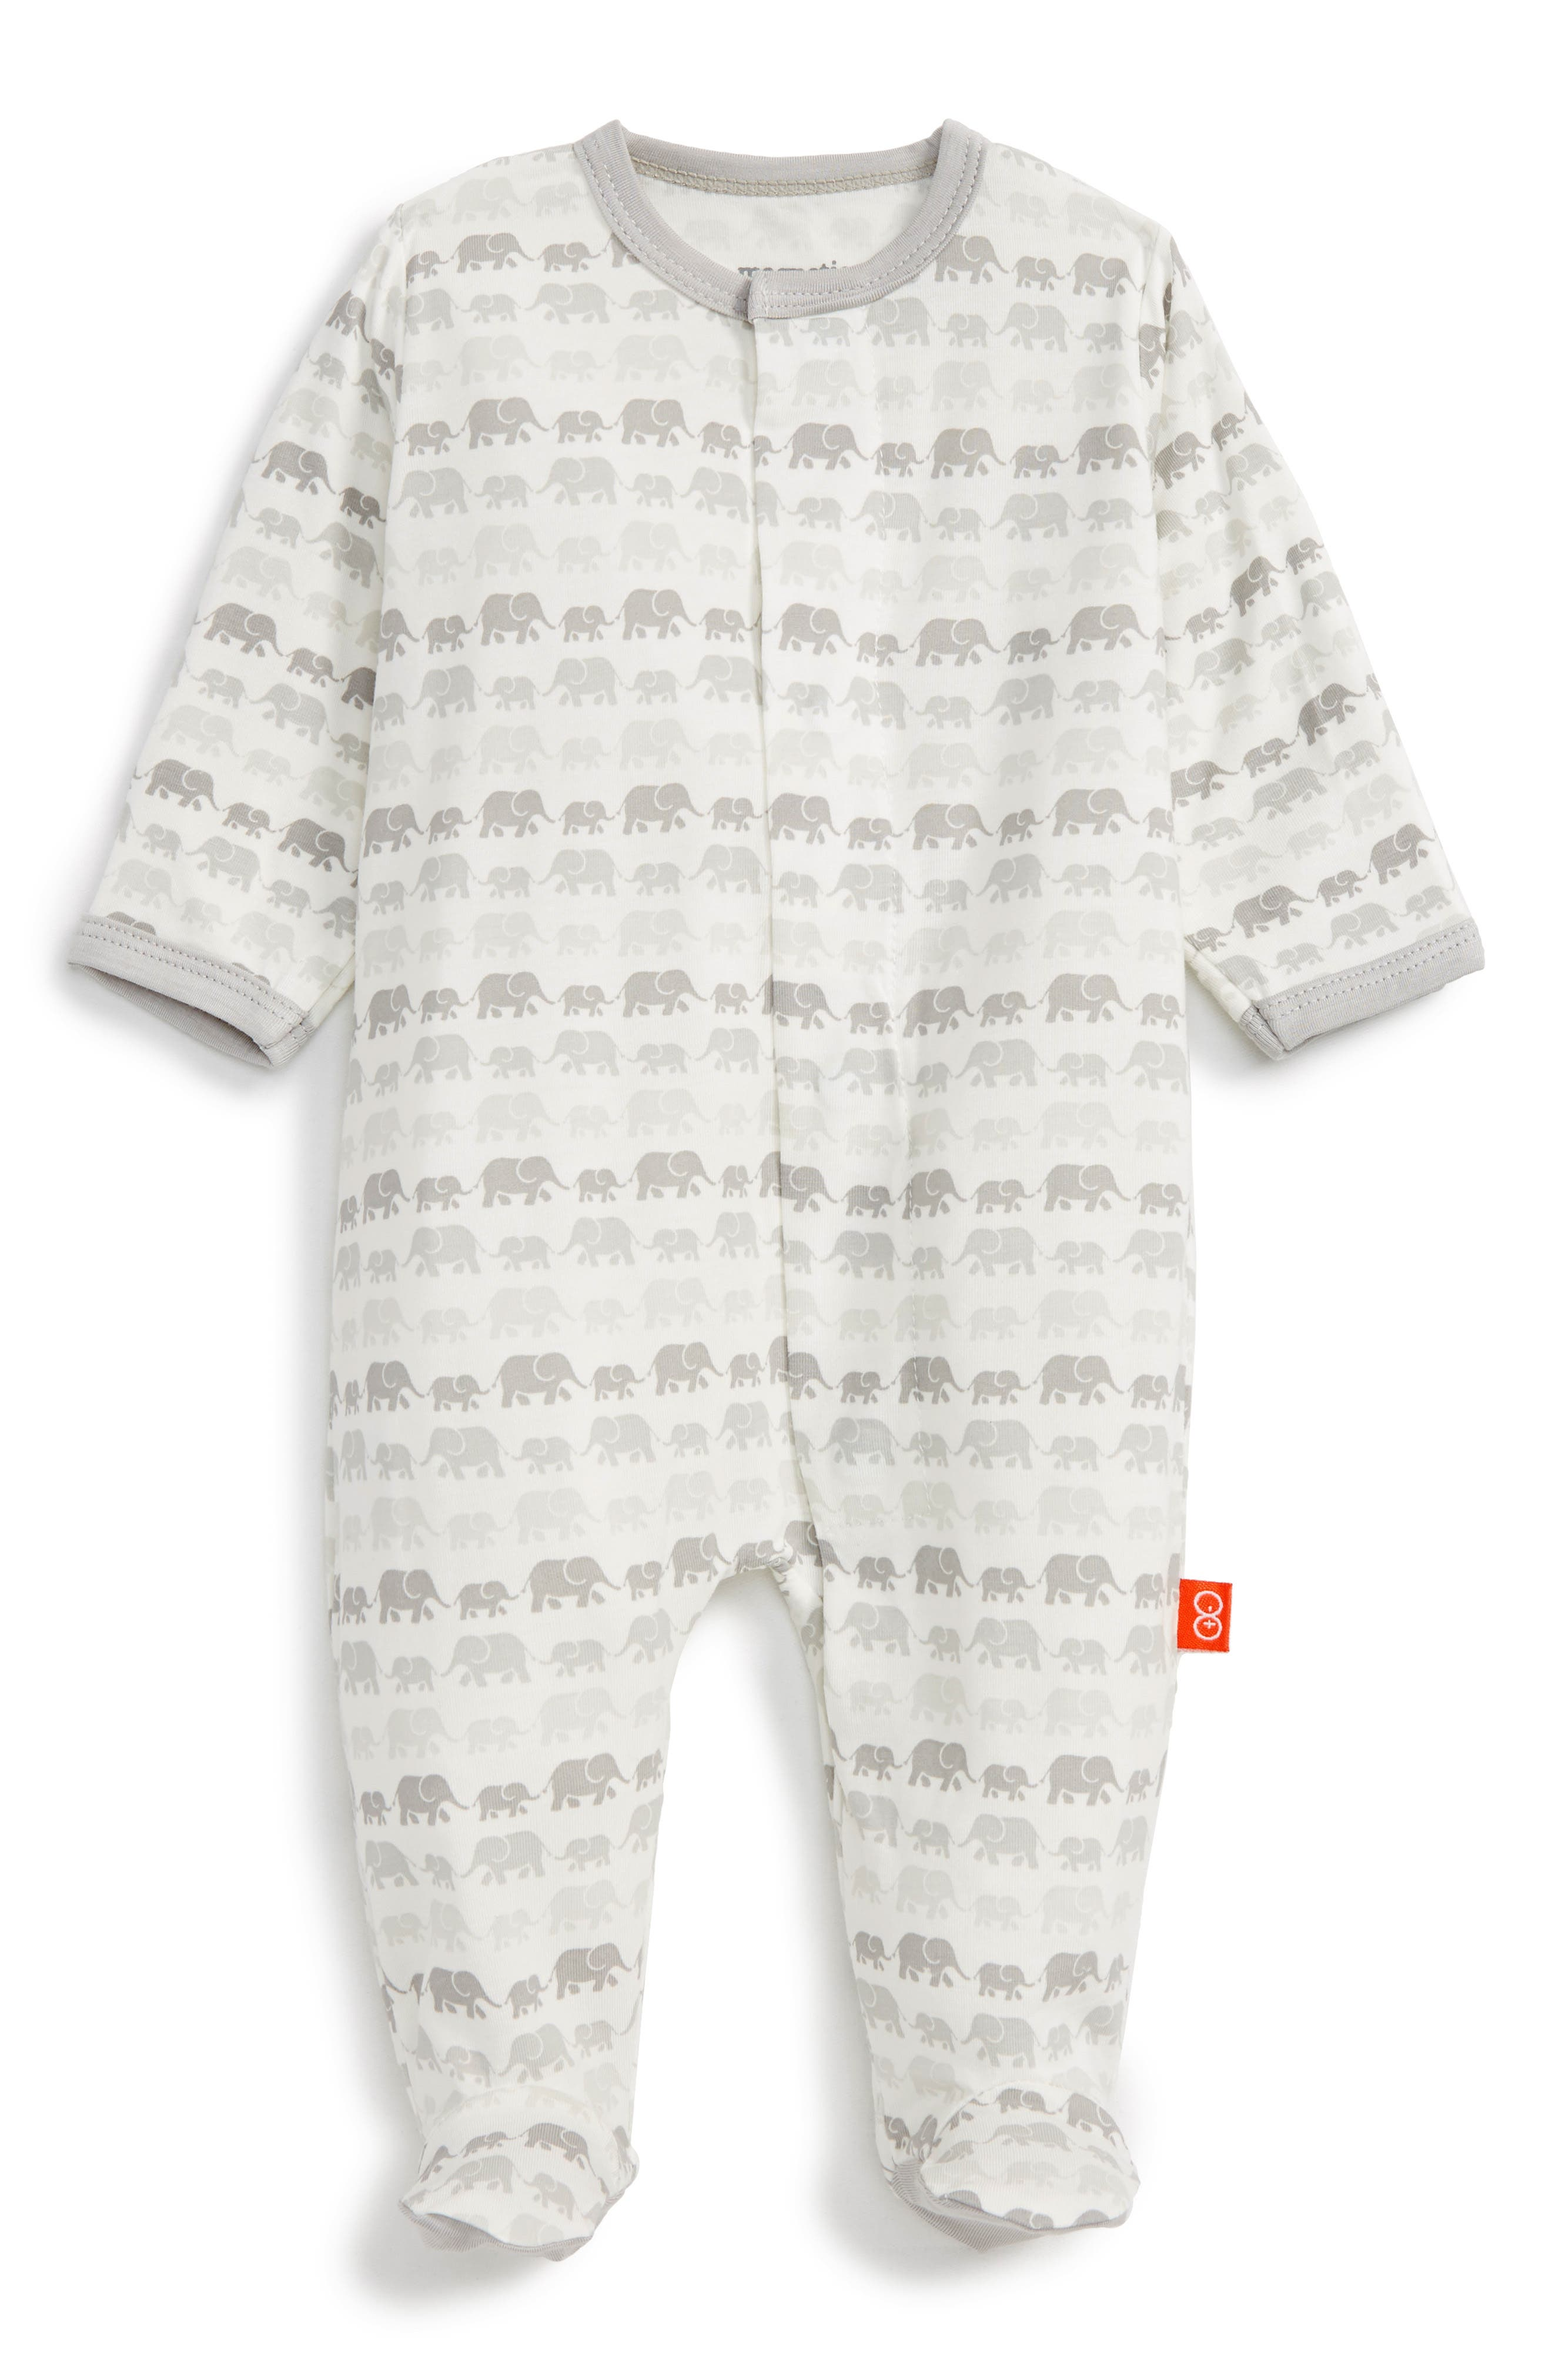 Alternate Image 1 Selected - Magnetic Me Fitted One-Piece Pajamas (Baby Girls)